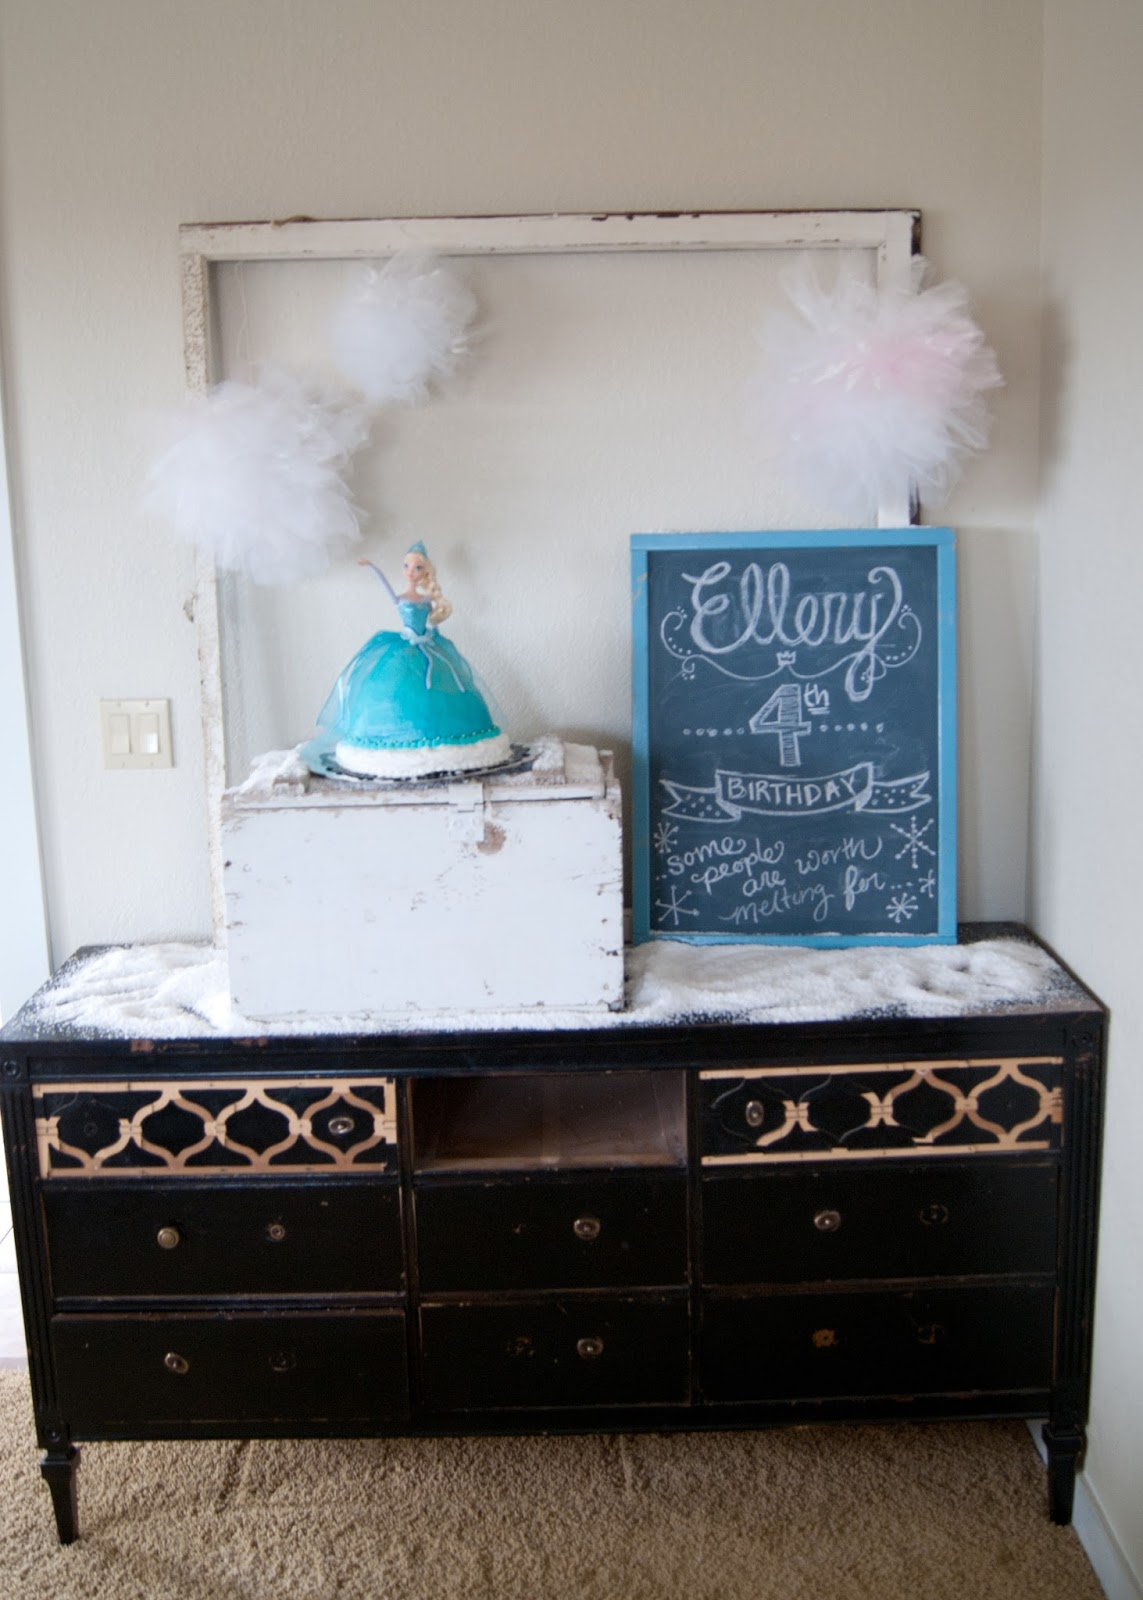 Frozen Themed birthday party - vintage decor, Elsa Cake, Chalkboard